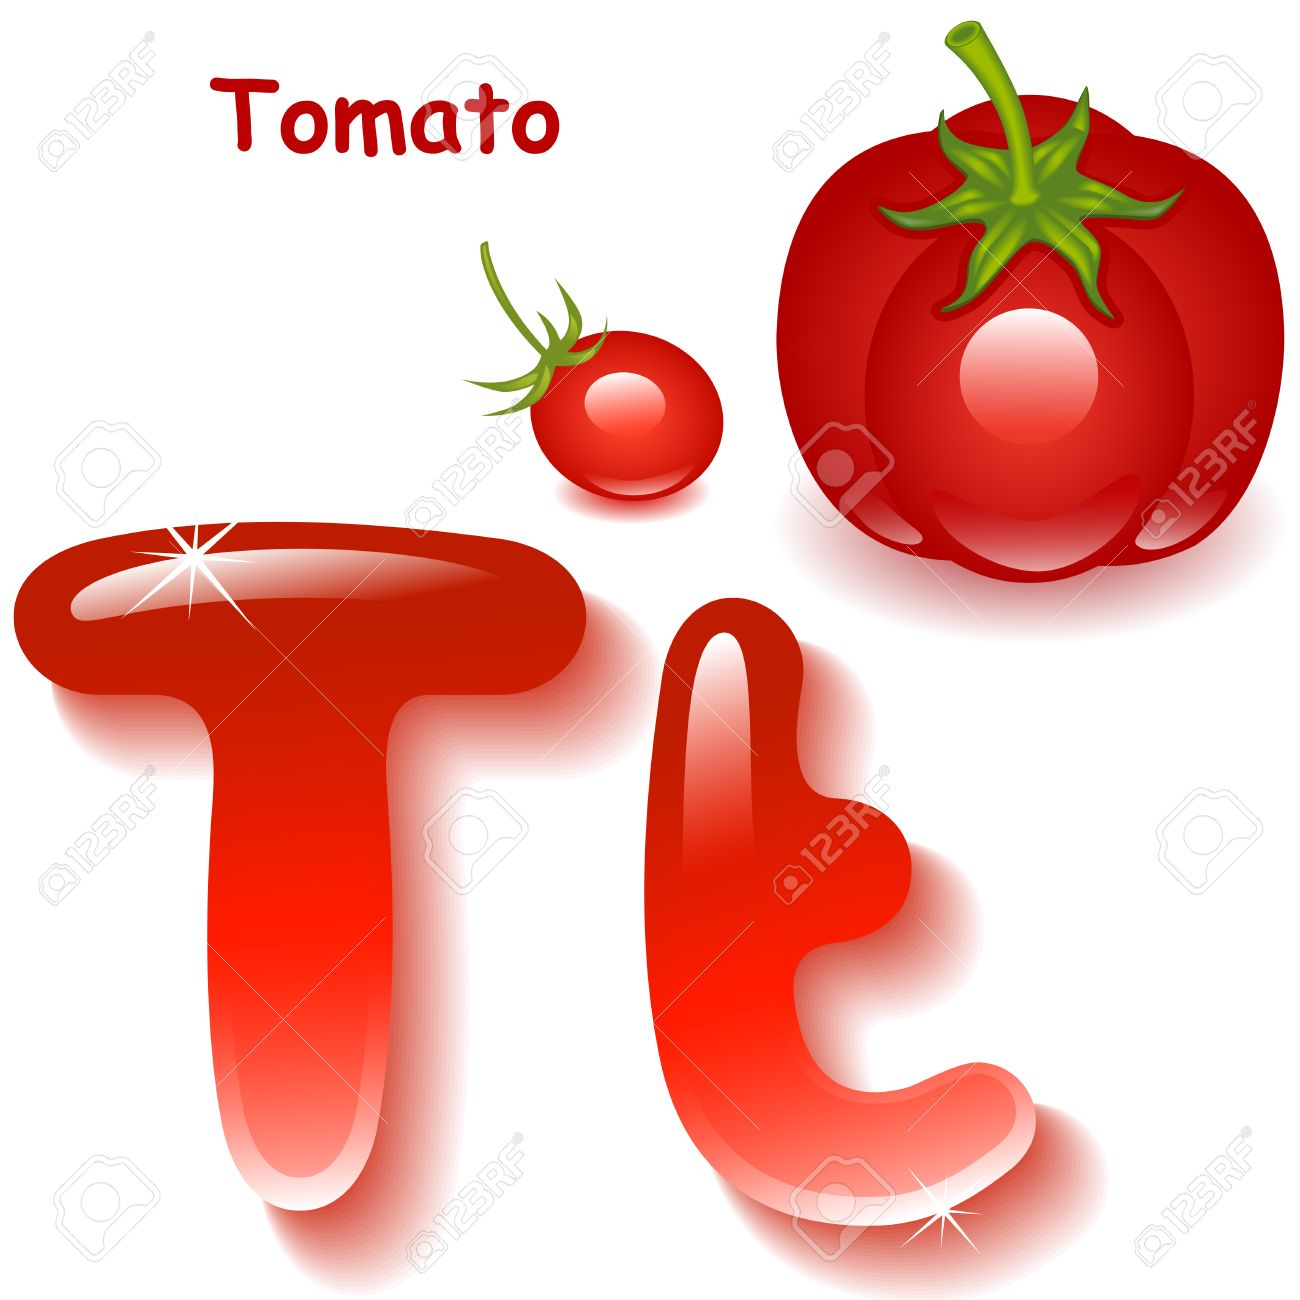 english capital and uppercase letter t stylized color of tomato juice red